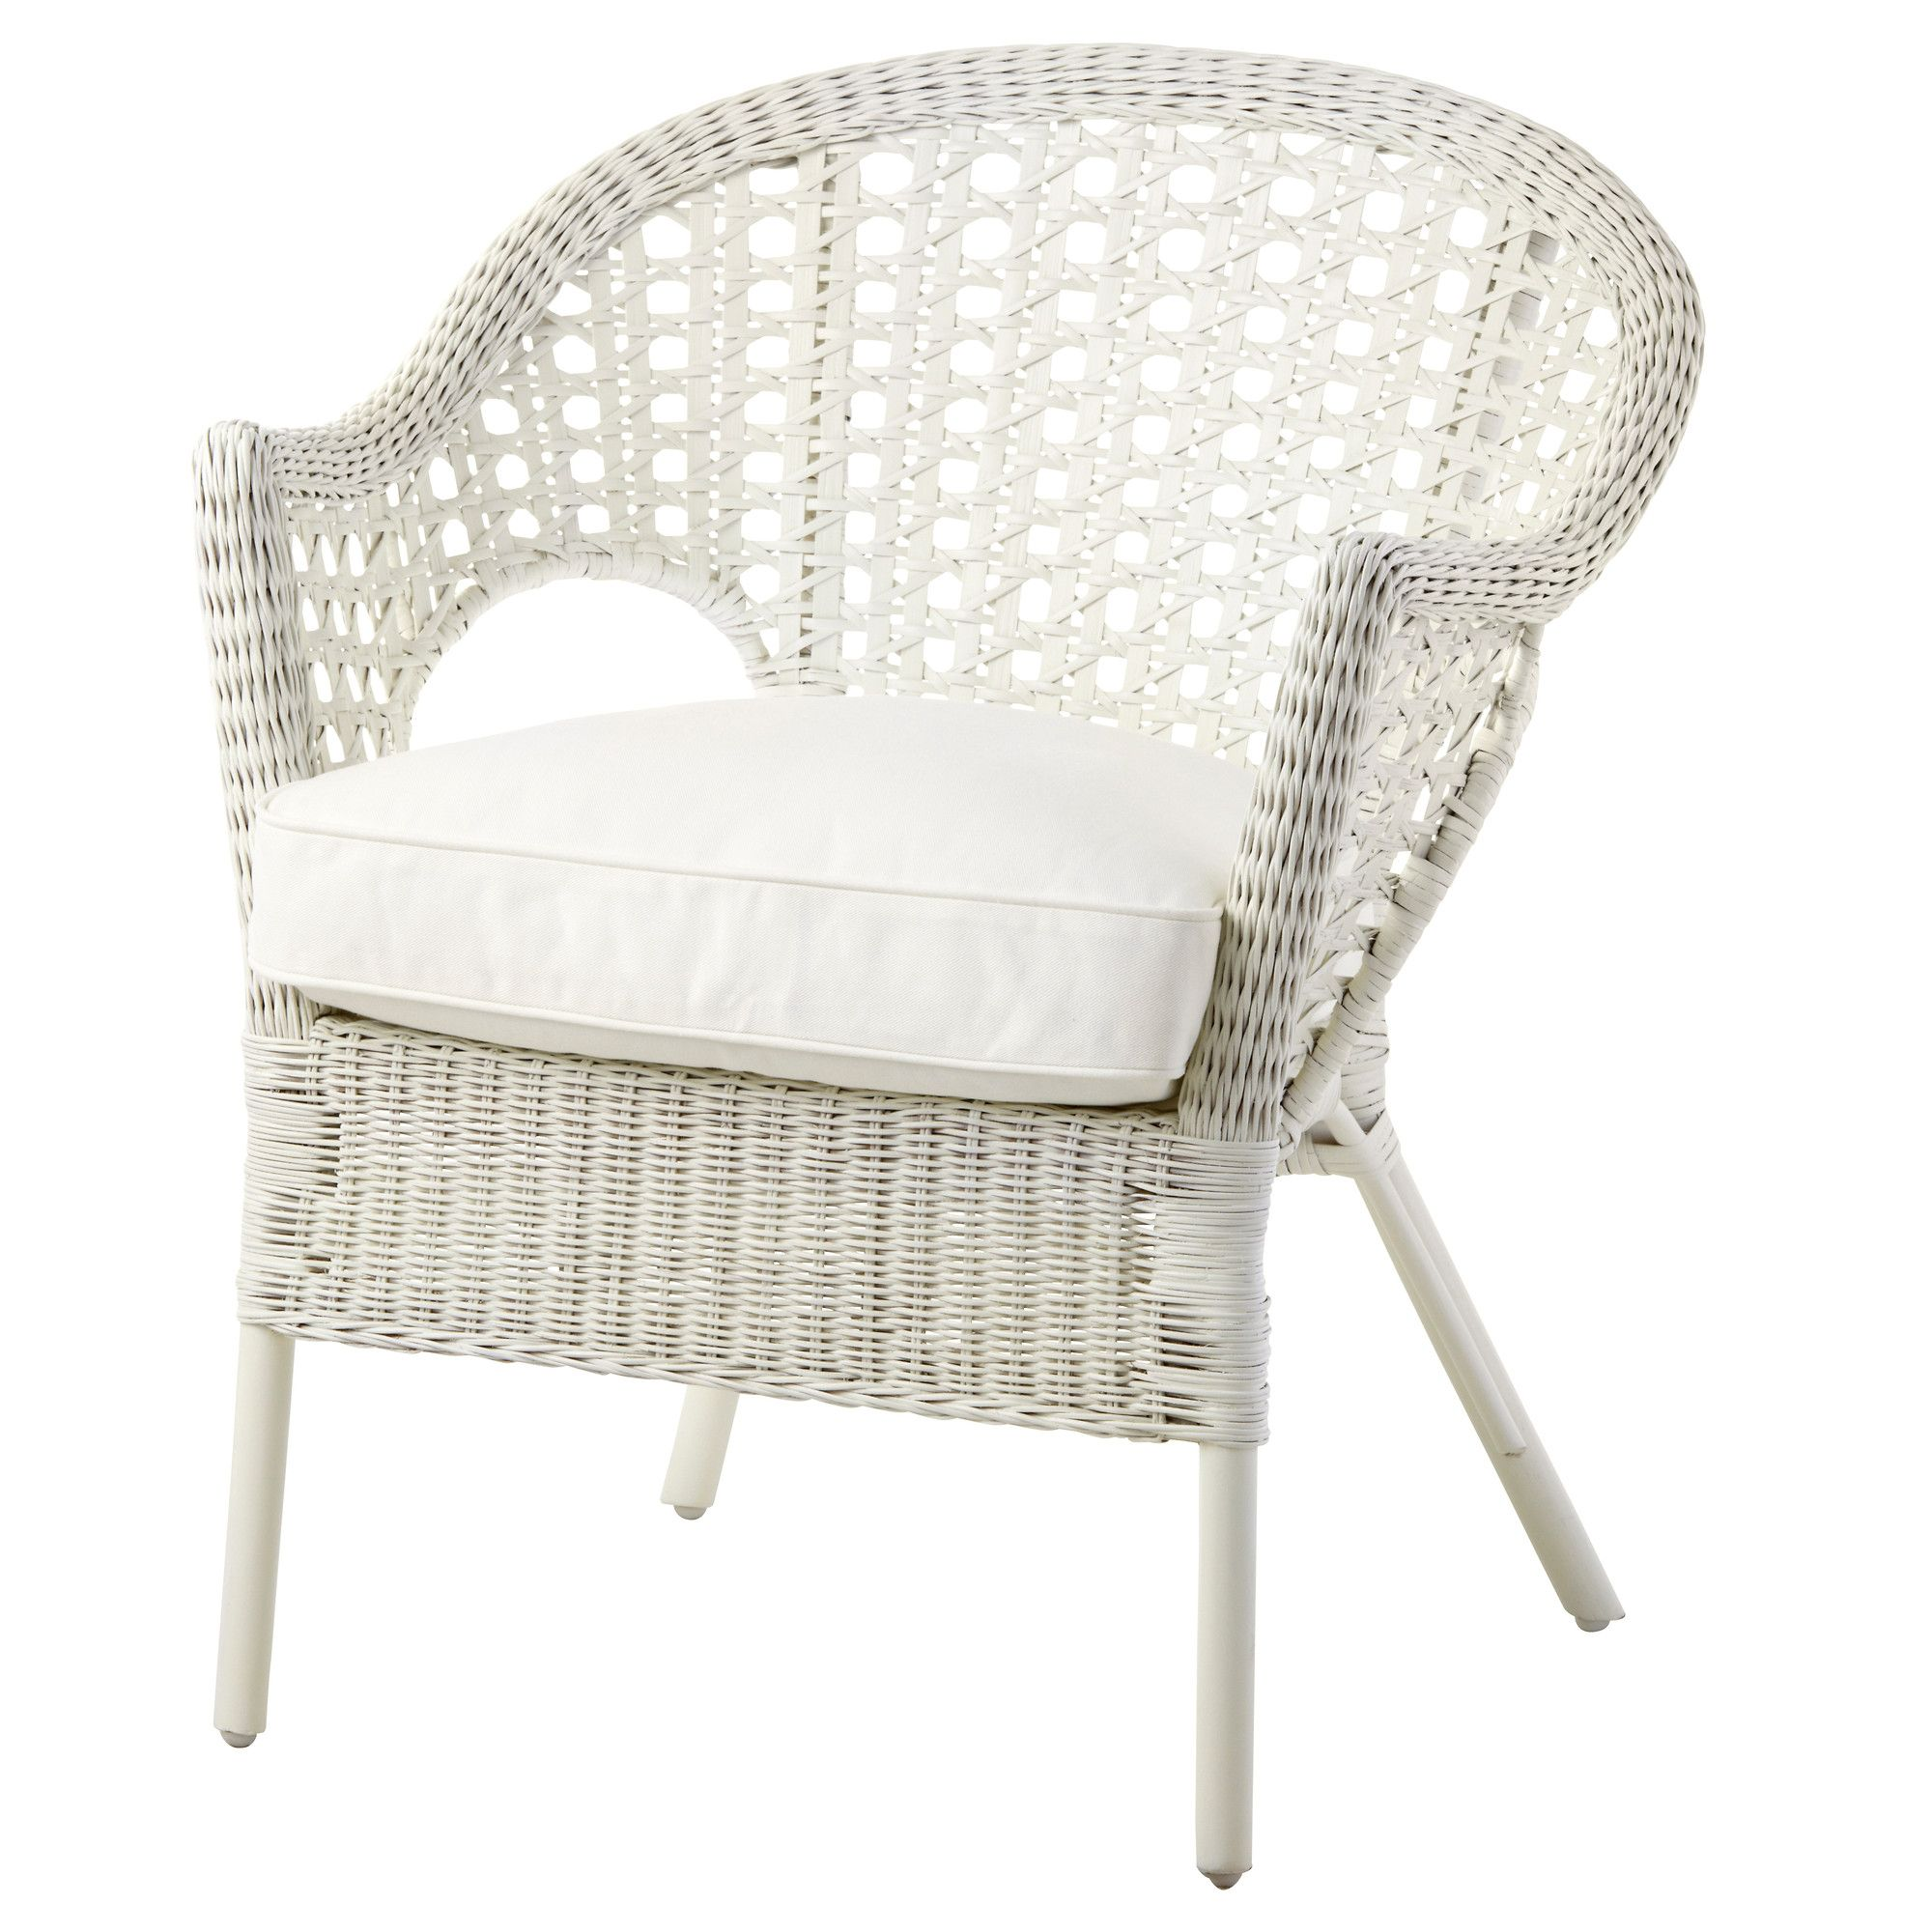 FINNTORP DJUPVIK Armchair with cushion white